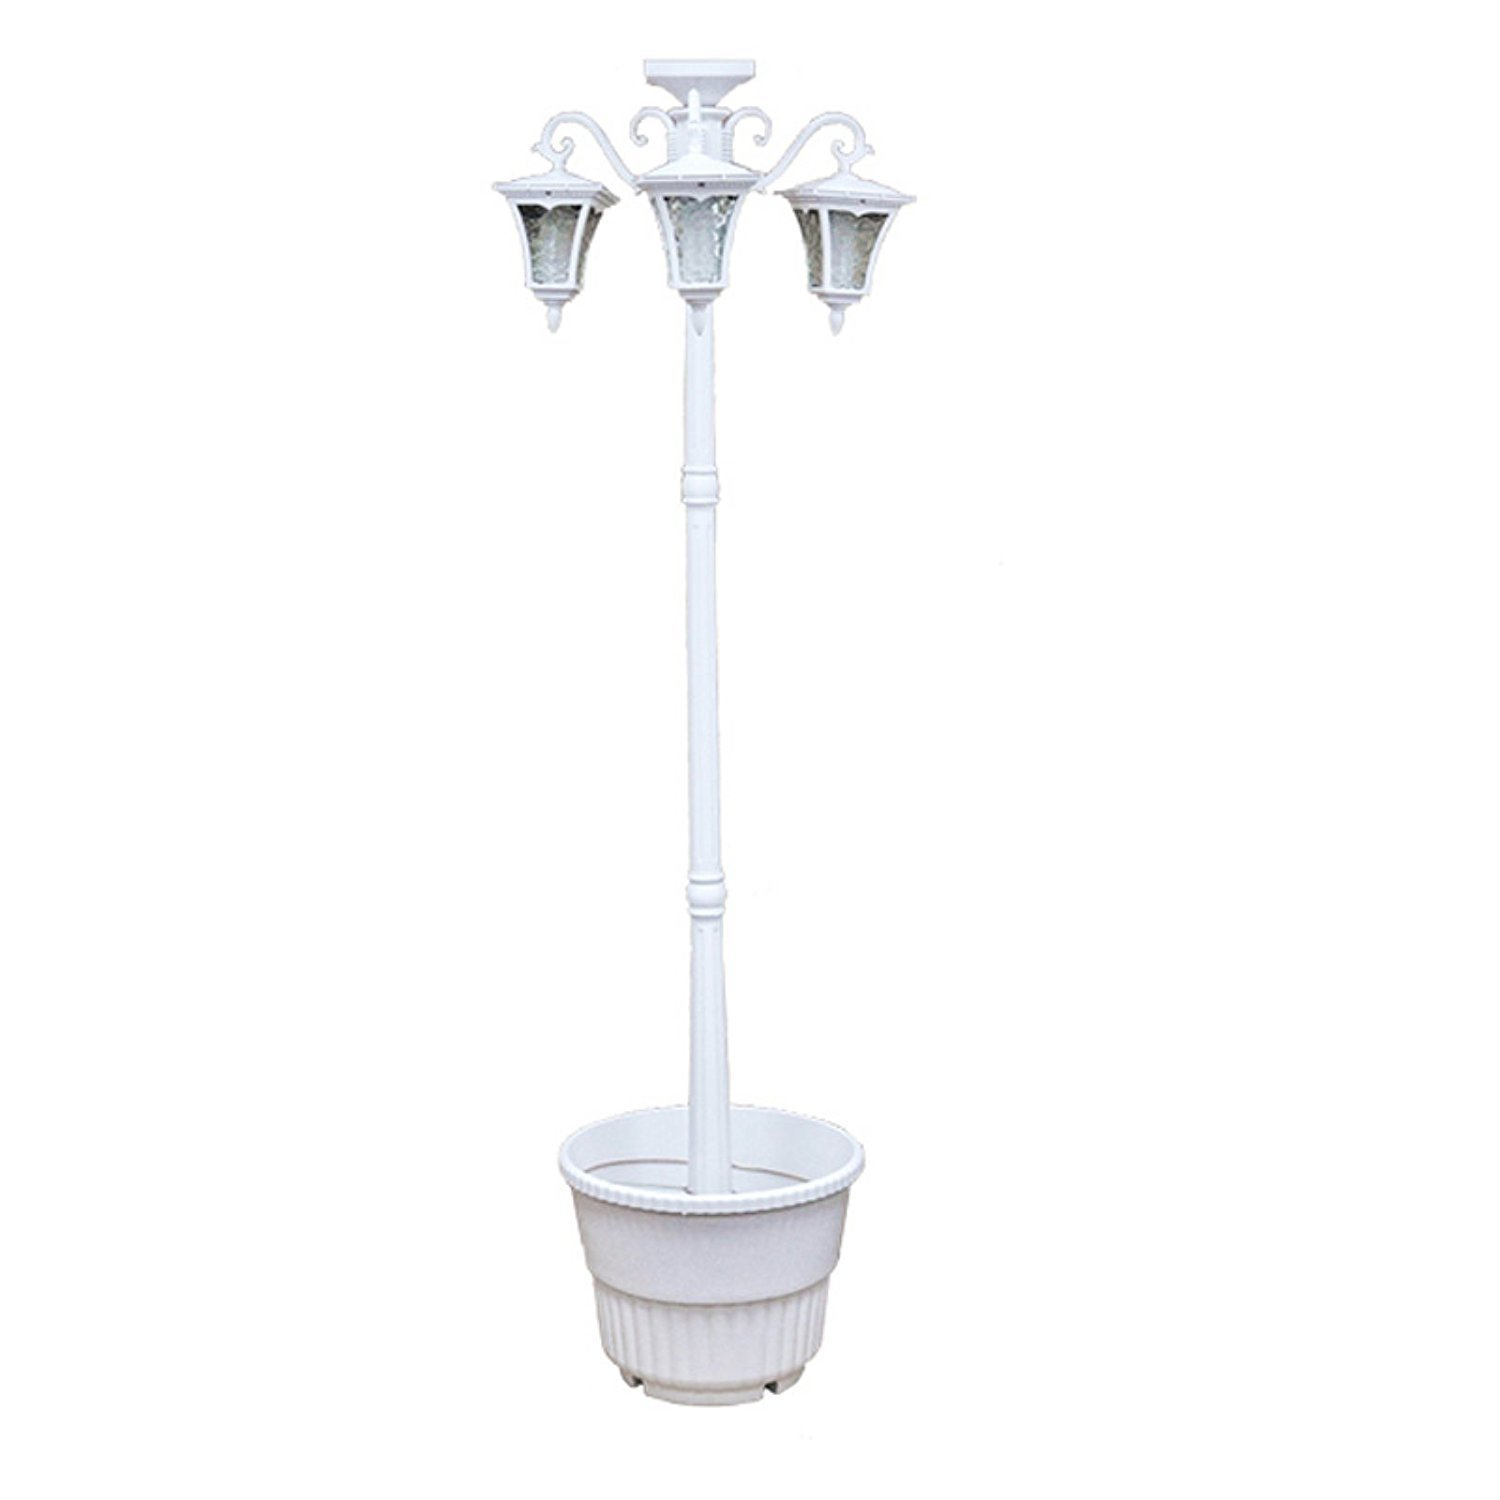 Sun-Ray 312011 Vittoria 3-Head Solar LED Lamp Post and Planter, Dual Amber/White Light Switch, 7ft, White, Batteries Included